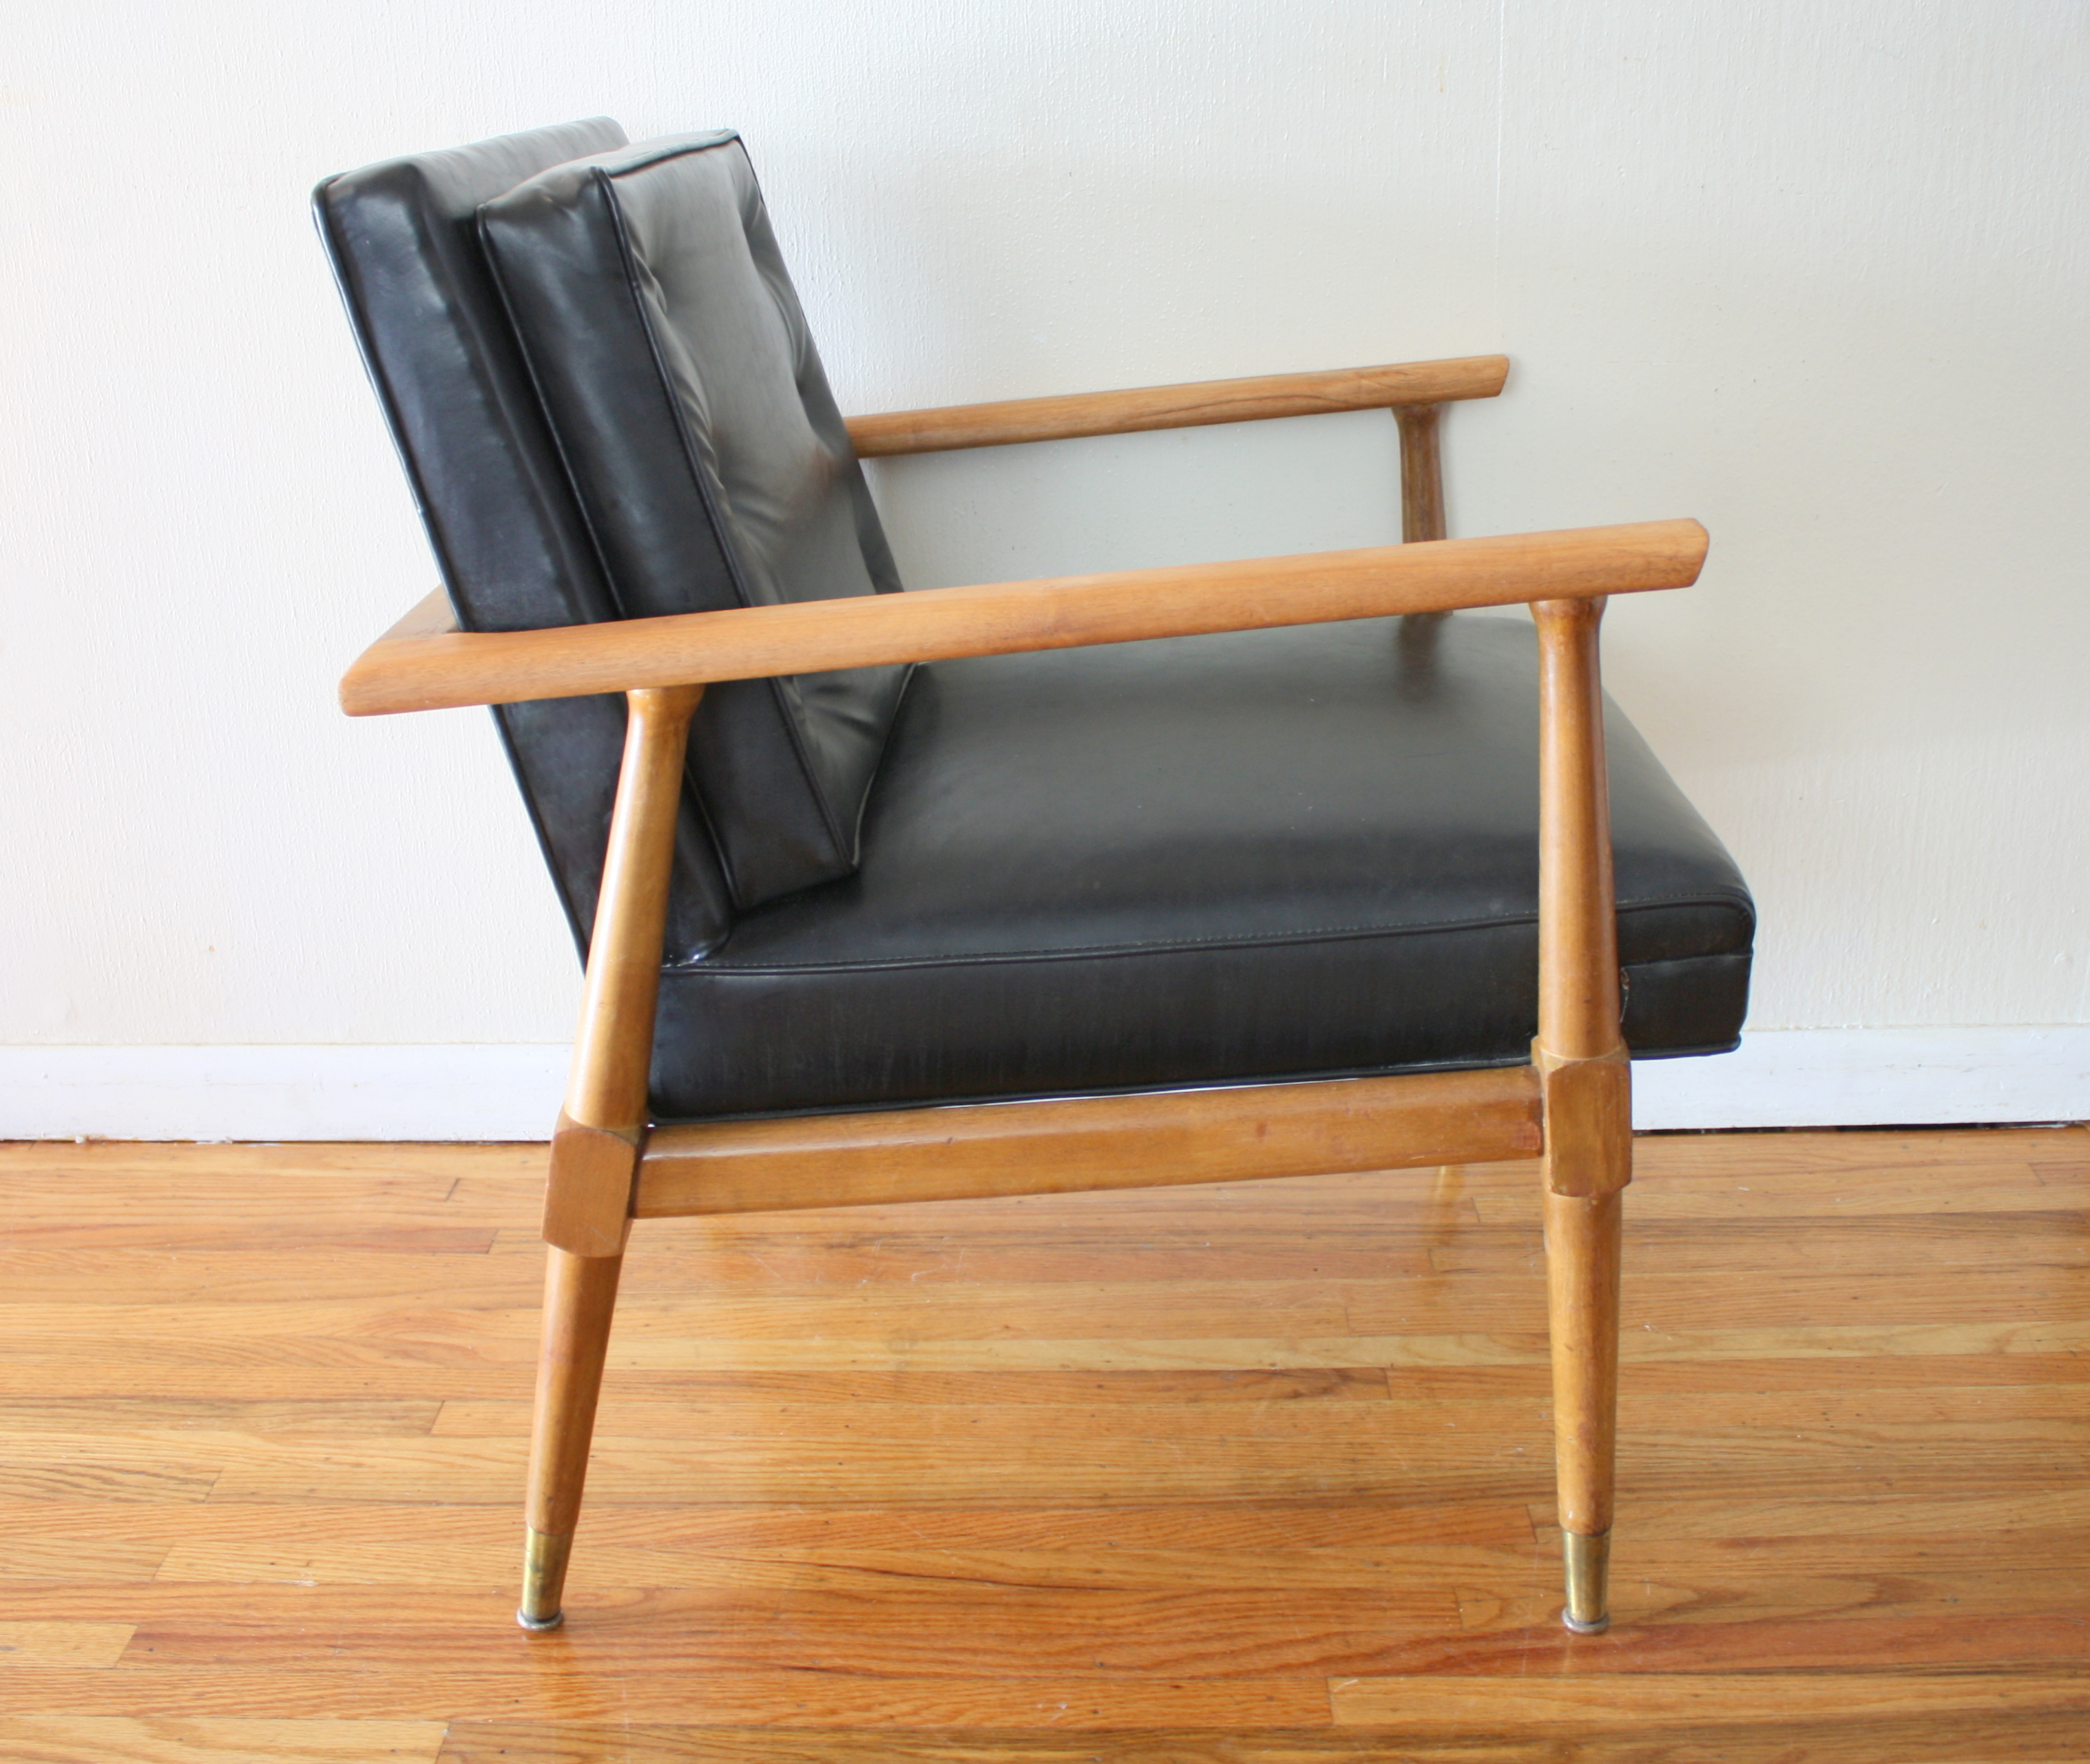 Mid Century Modern Arm Chairs Picked Vintage : mcm black arm chair 2 from pickedvintage.com size 3035 x 2562 jpeg 2498kB